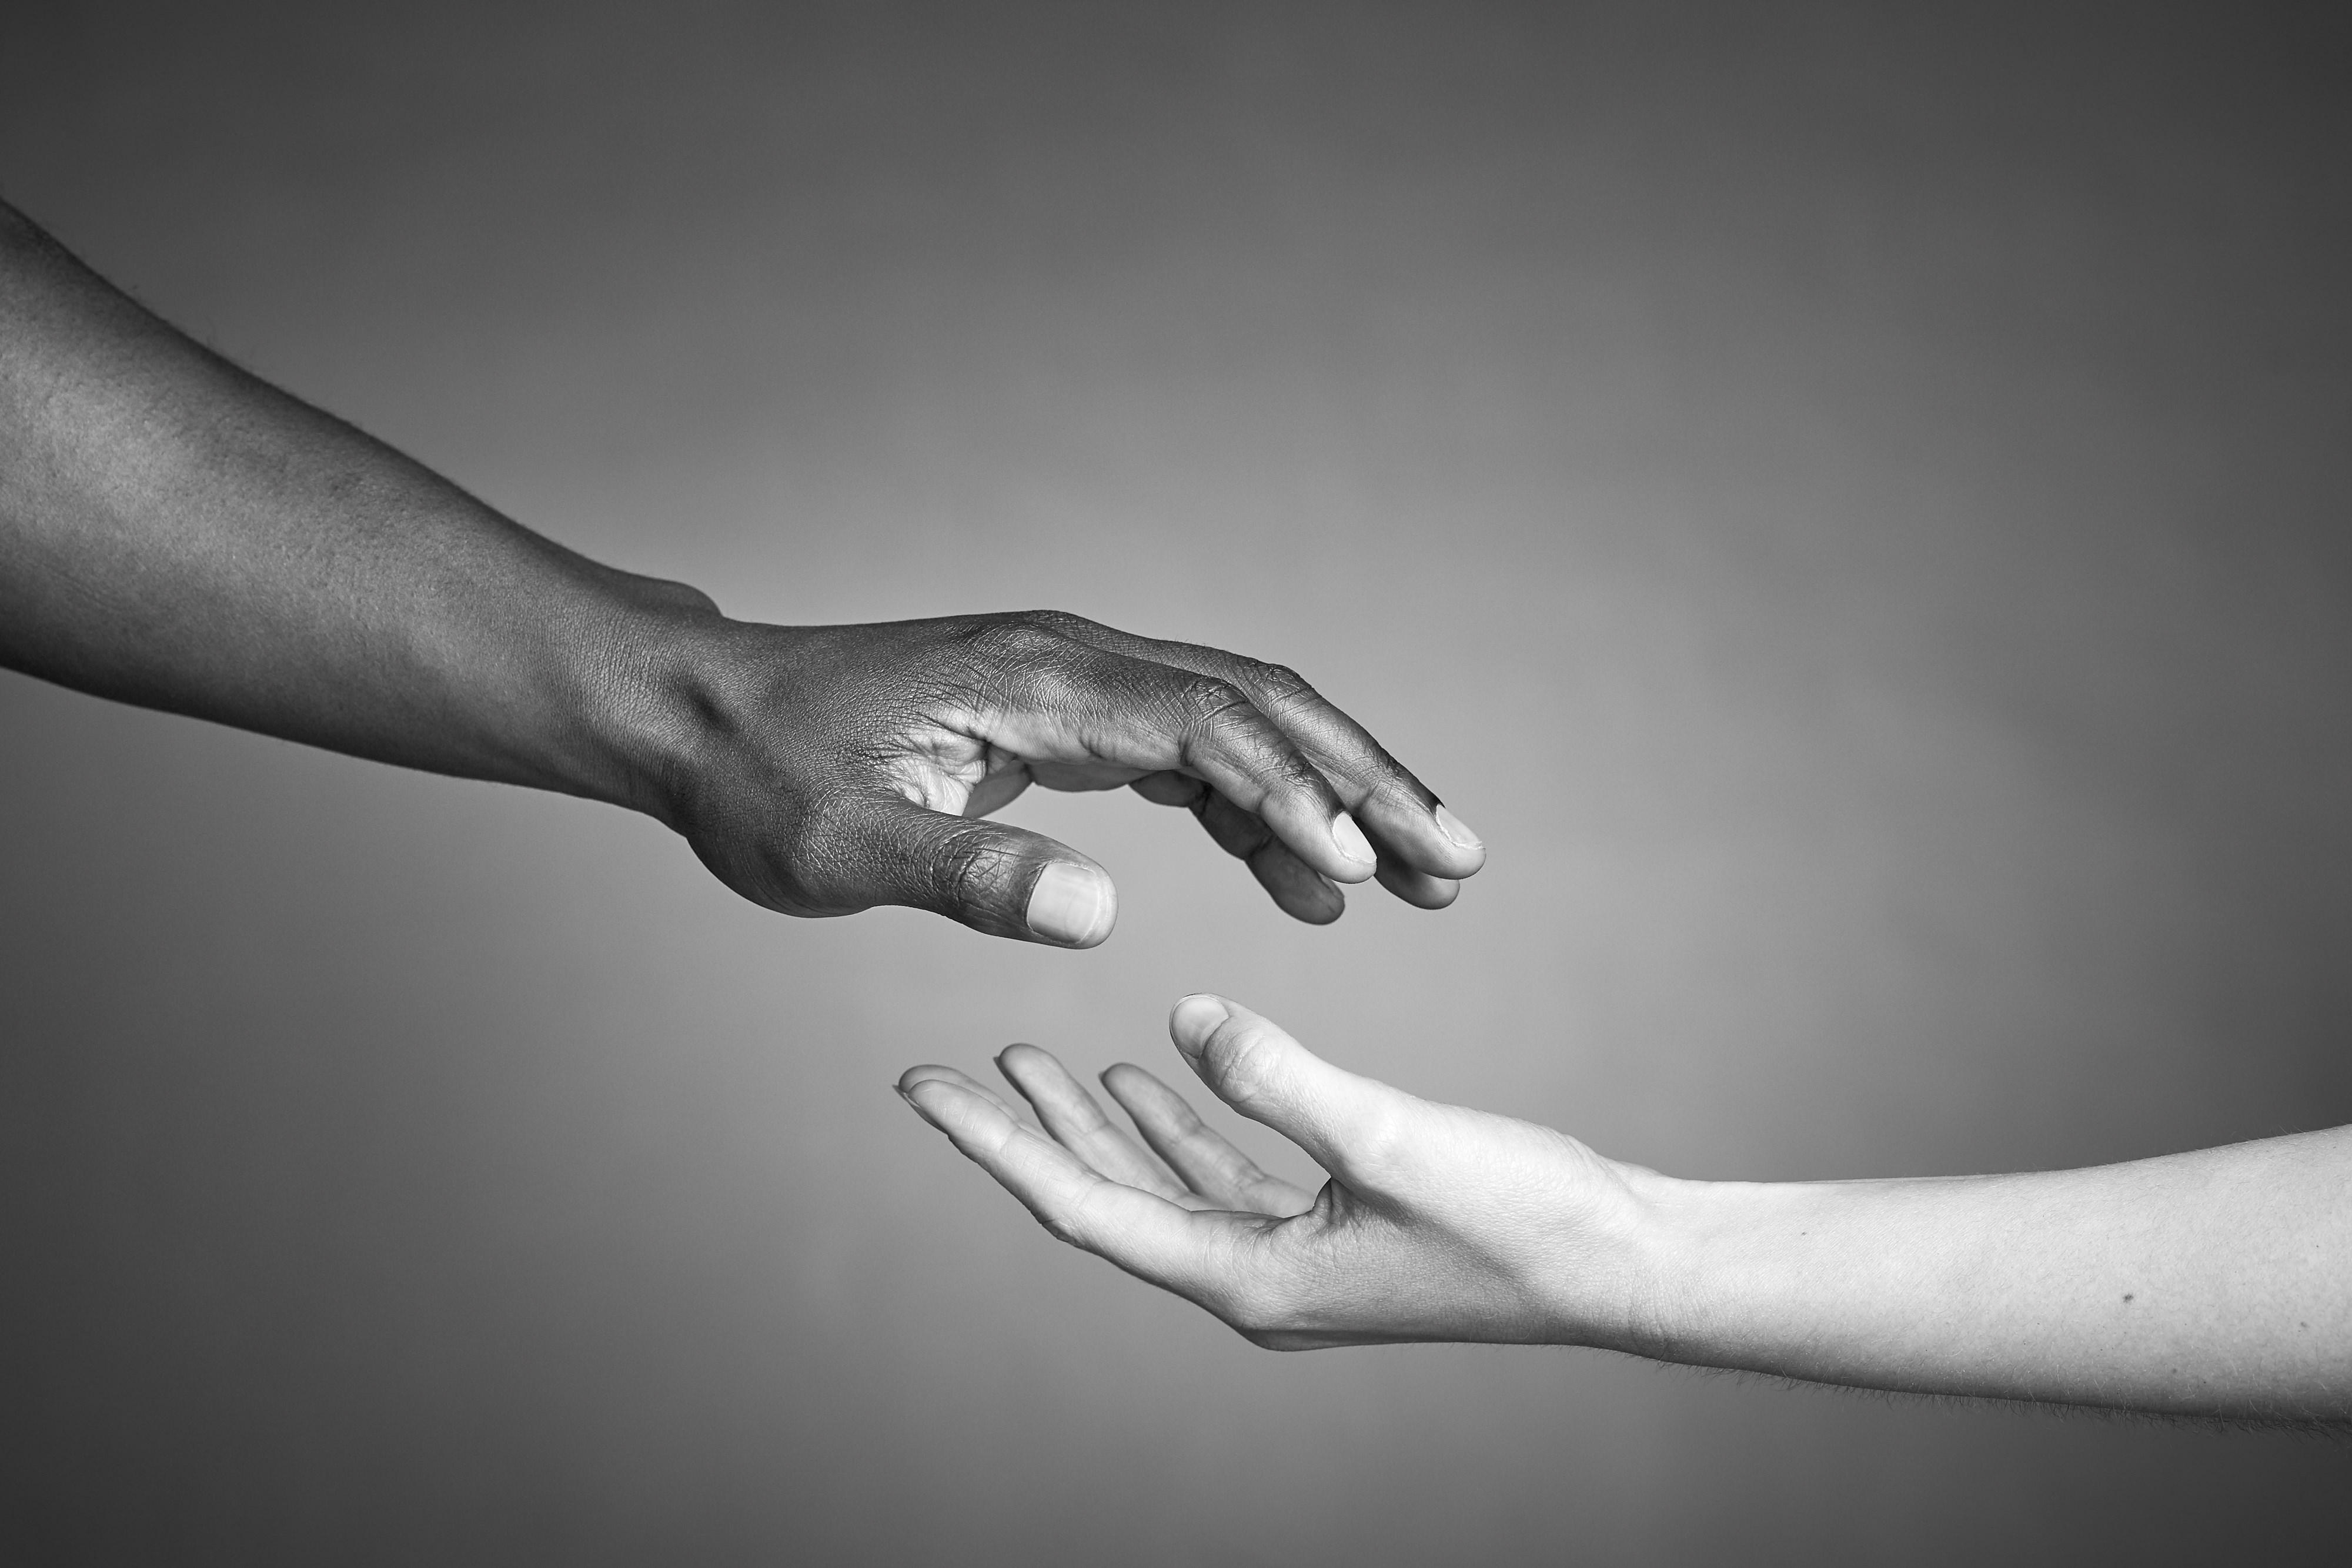 Black and white hands together against racism